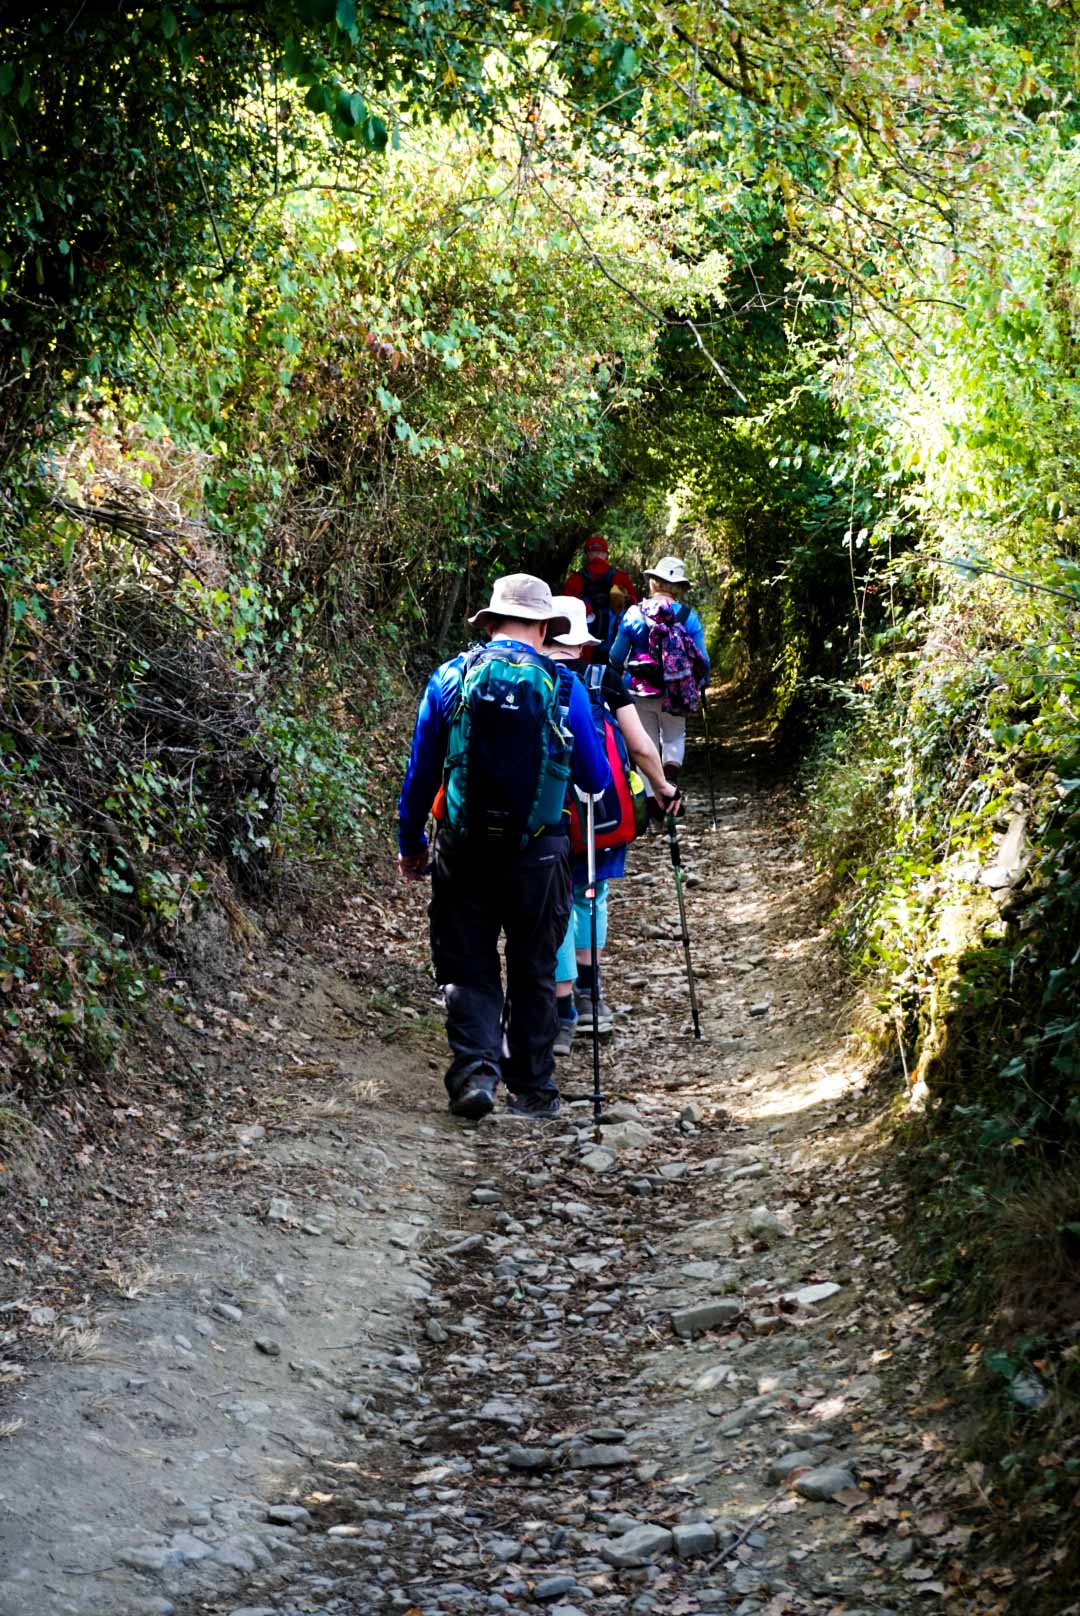 A line of people walking along a path on the Camino de Santiago.